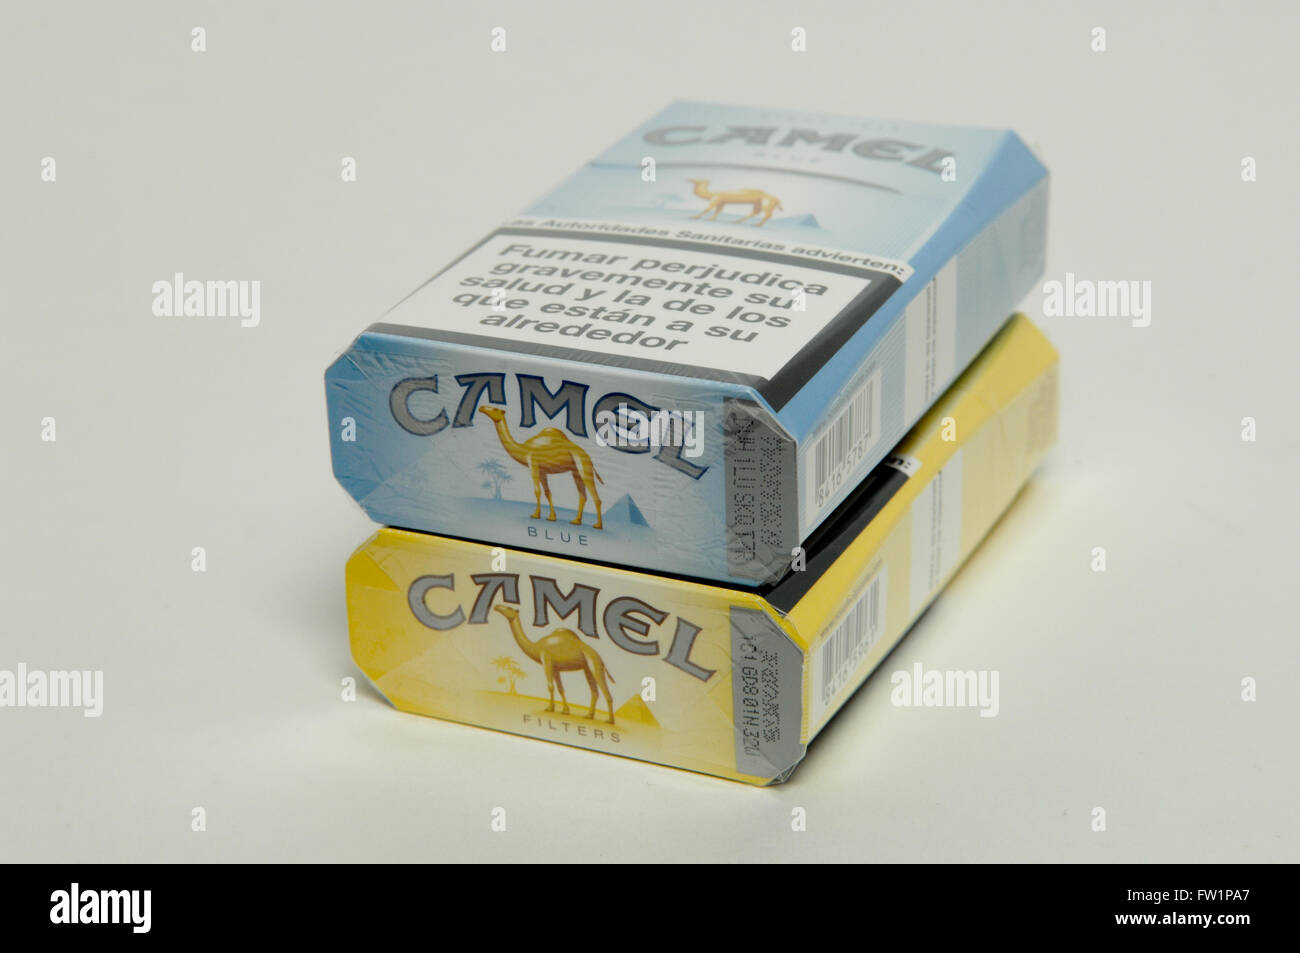 Camel Cigarettes High Resolution Stock Photography And Images Alamy